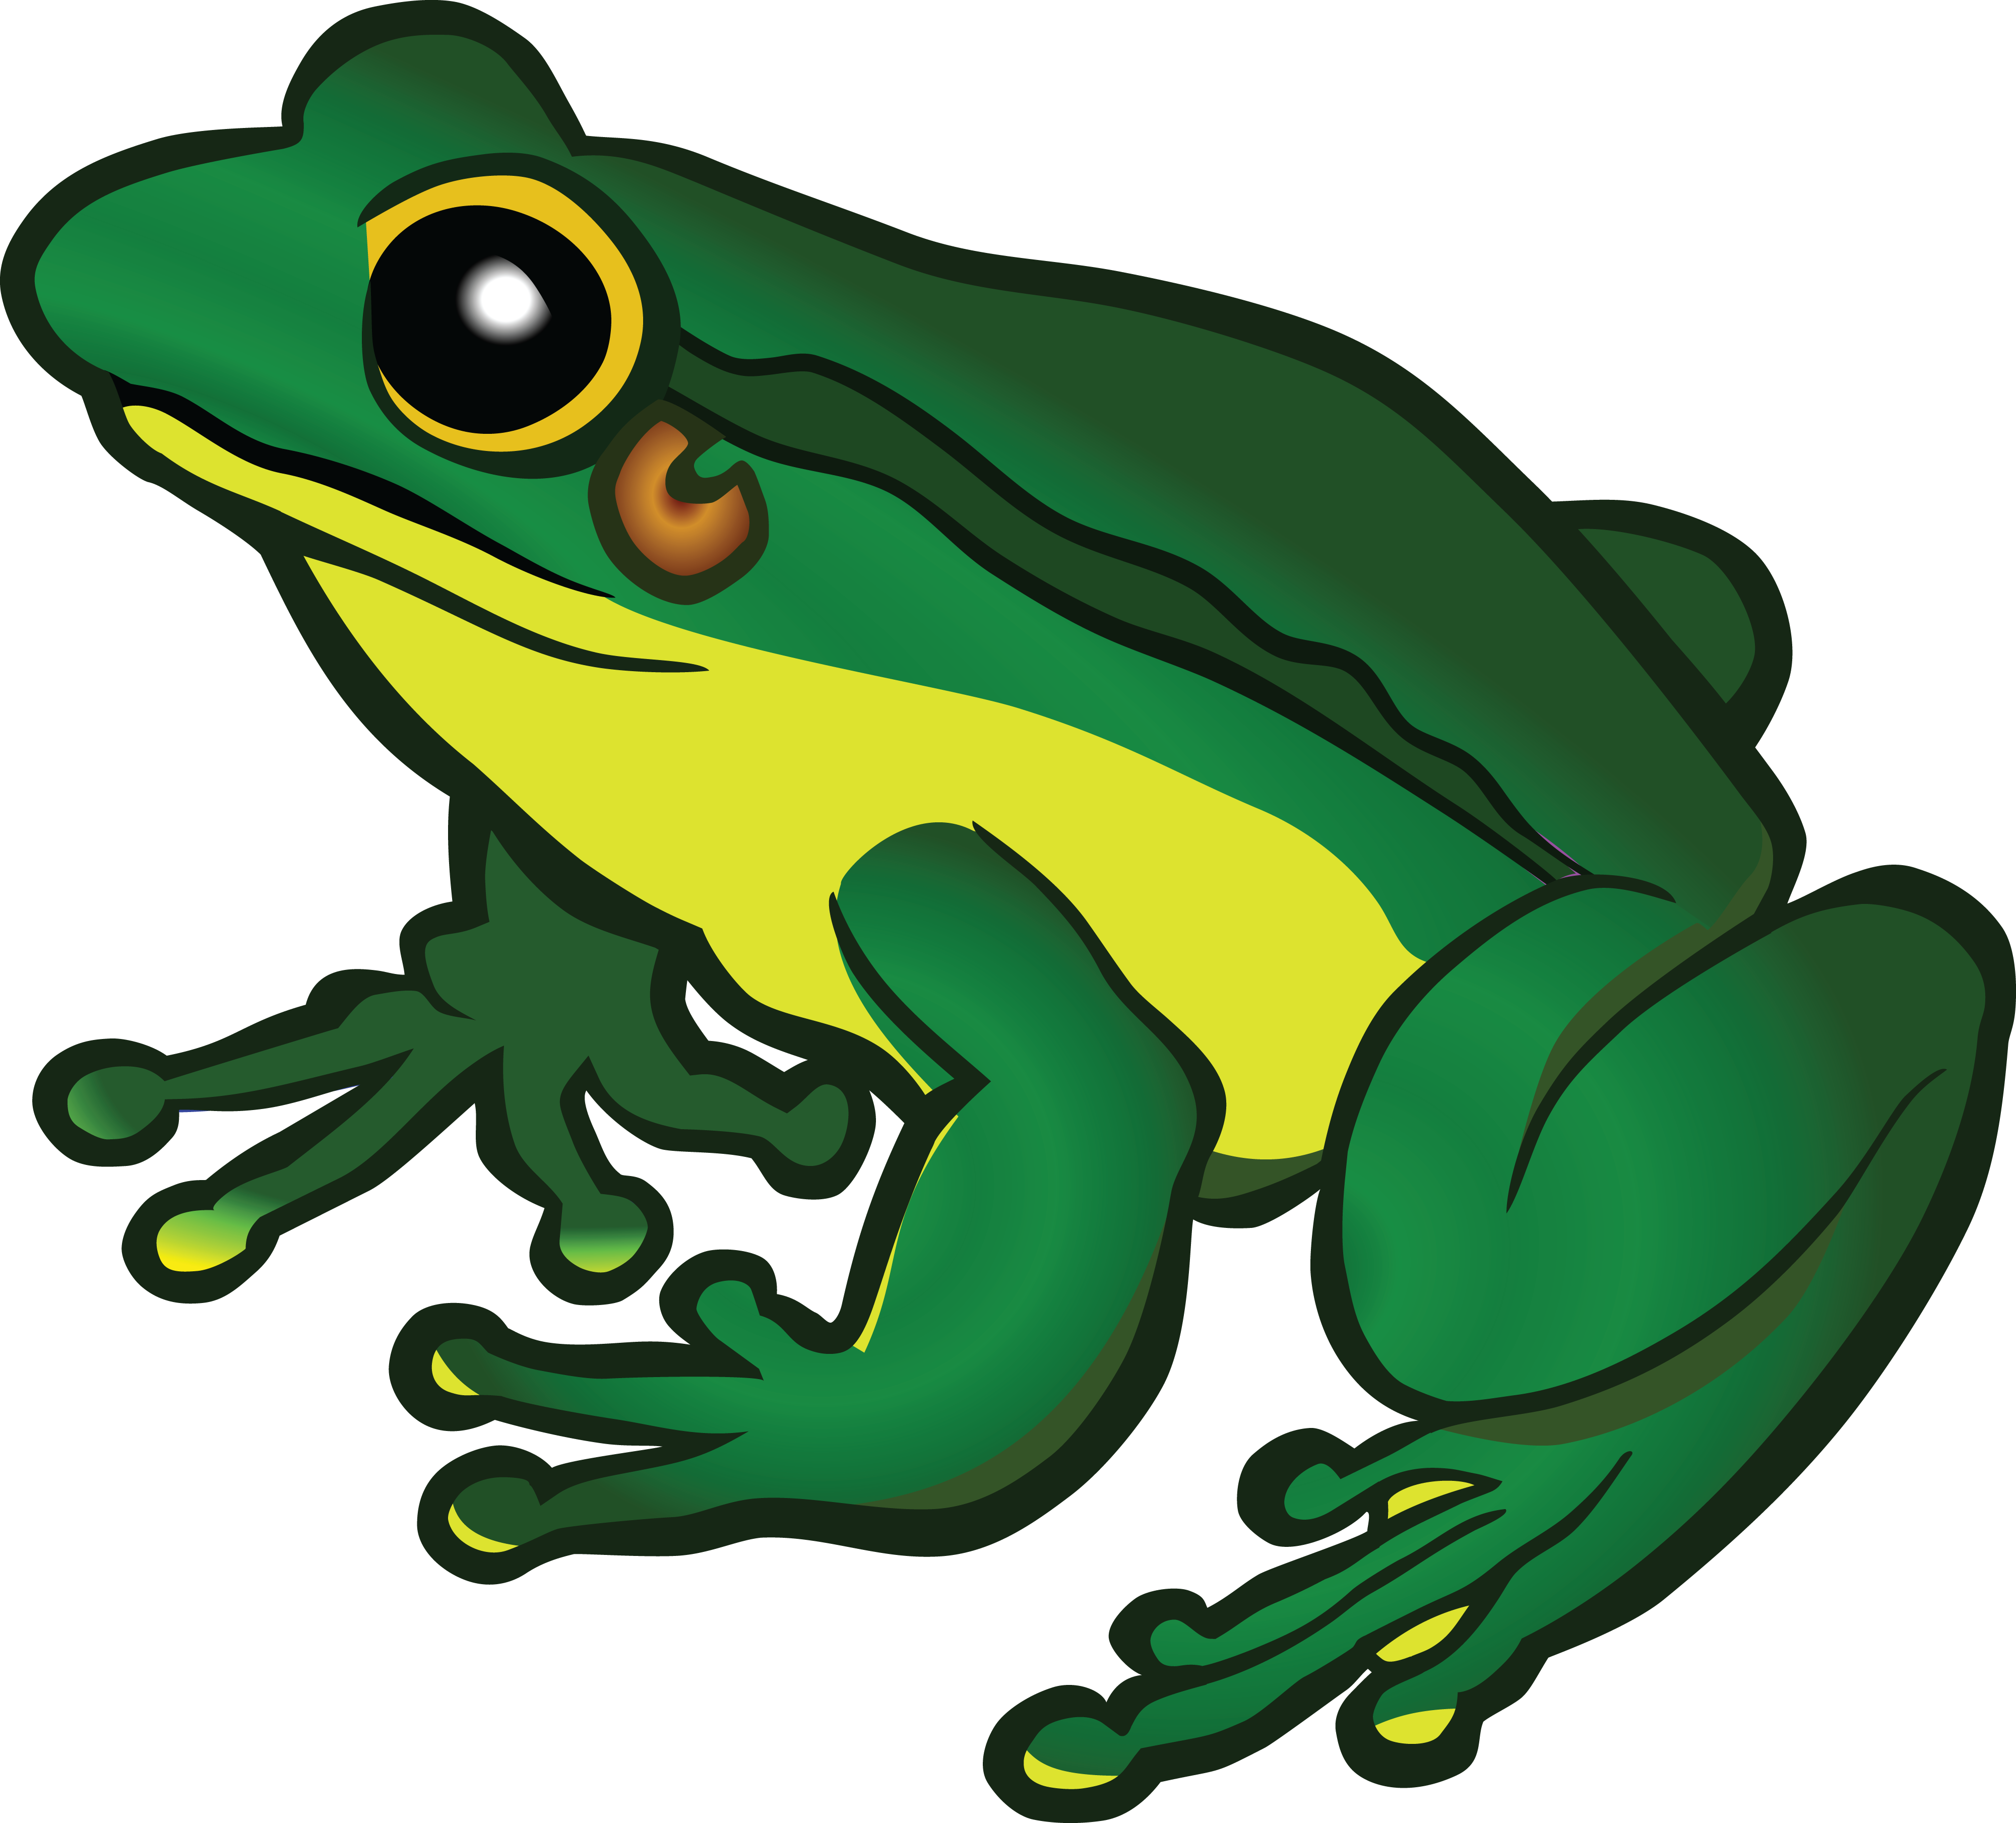 Frog crown clipart transparent stock Free Clipart Of A frog | FROG CLIPART | Pinterest | Frogs transparent stock